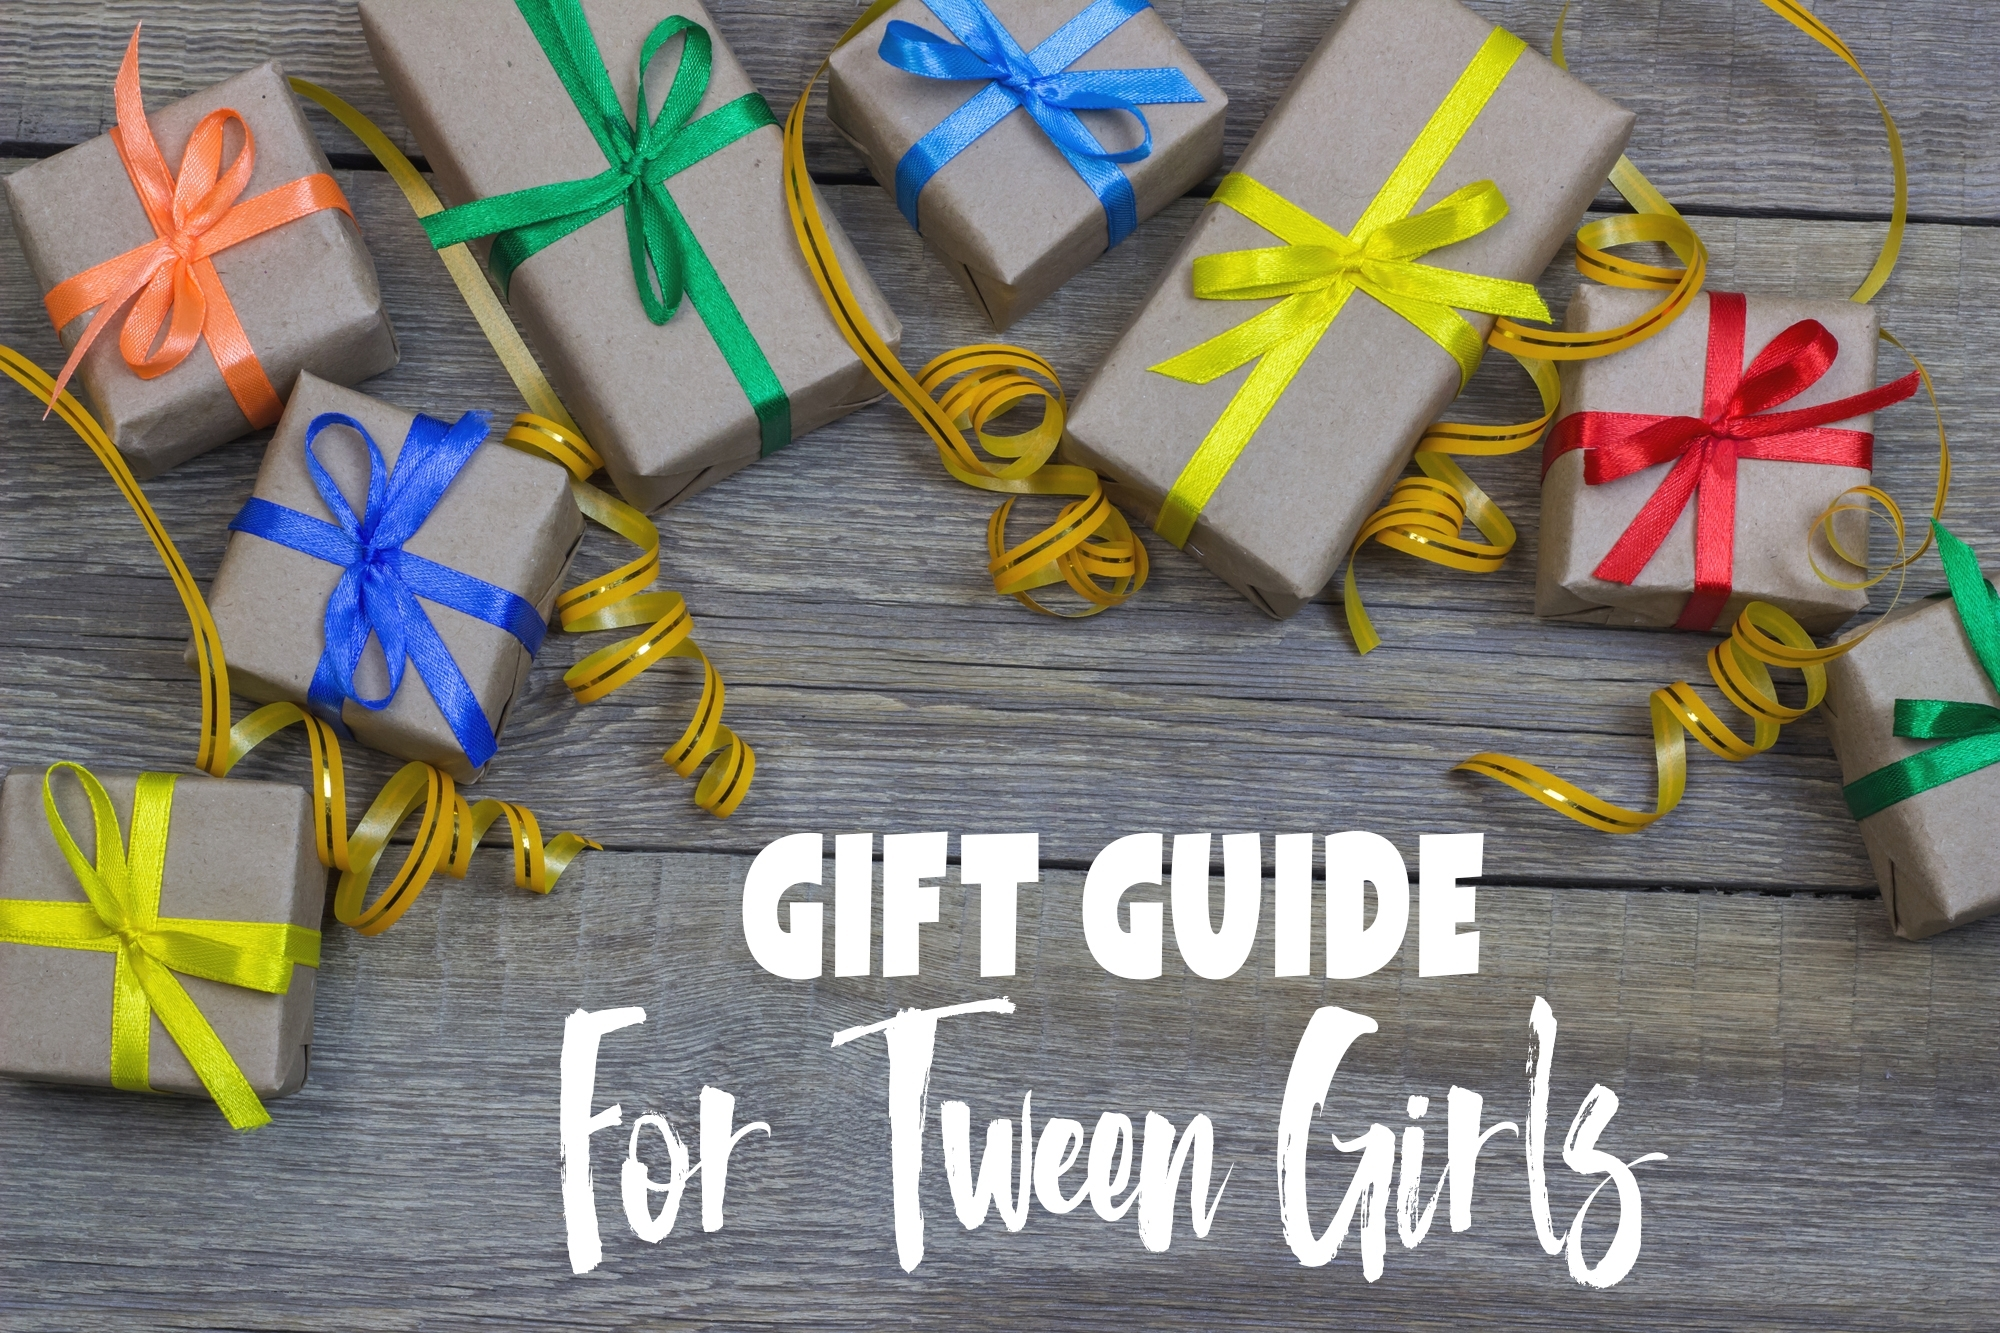 Gift Ideas For Tween Girls They Will Love: 2018 Gift Guide | Raising throughout Girls Advent Calendar With Gifts